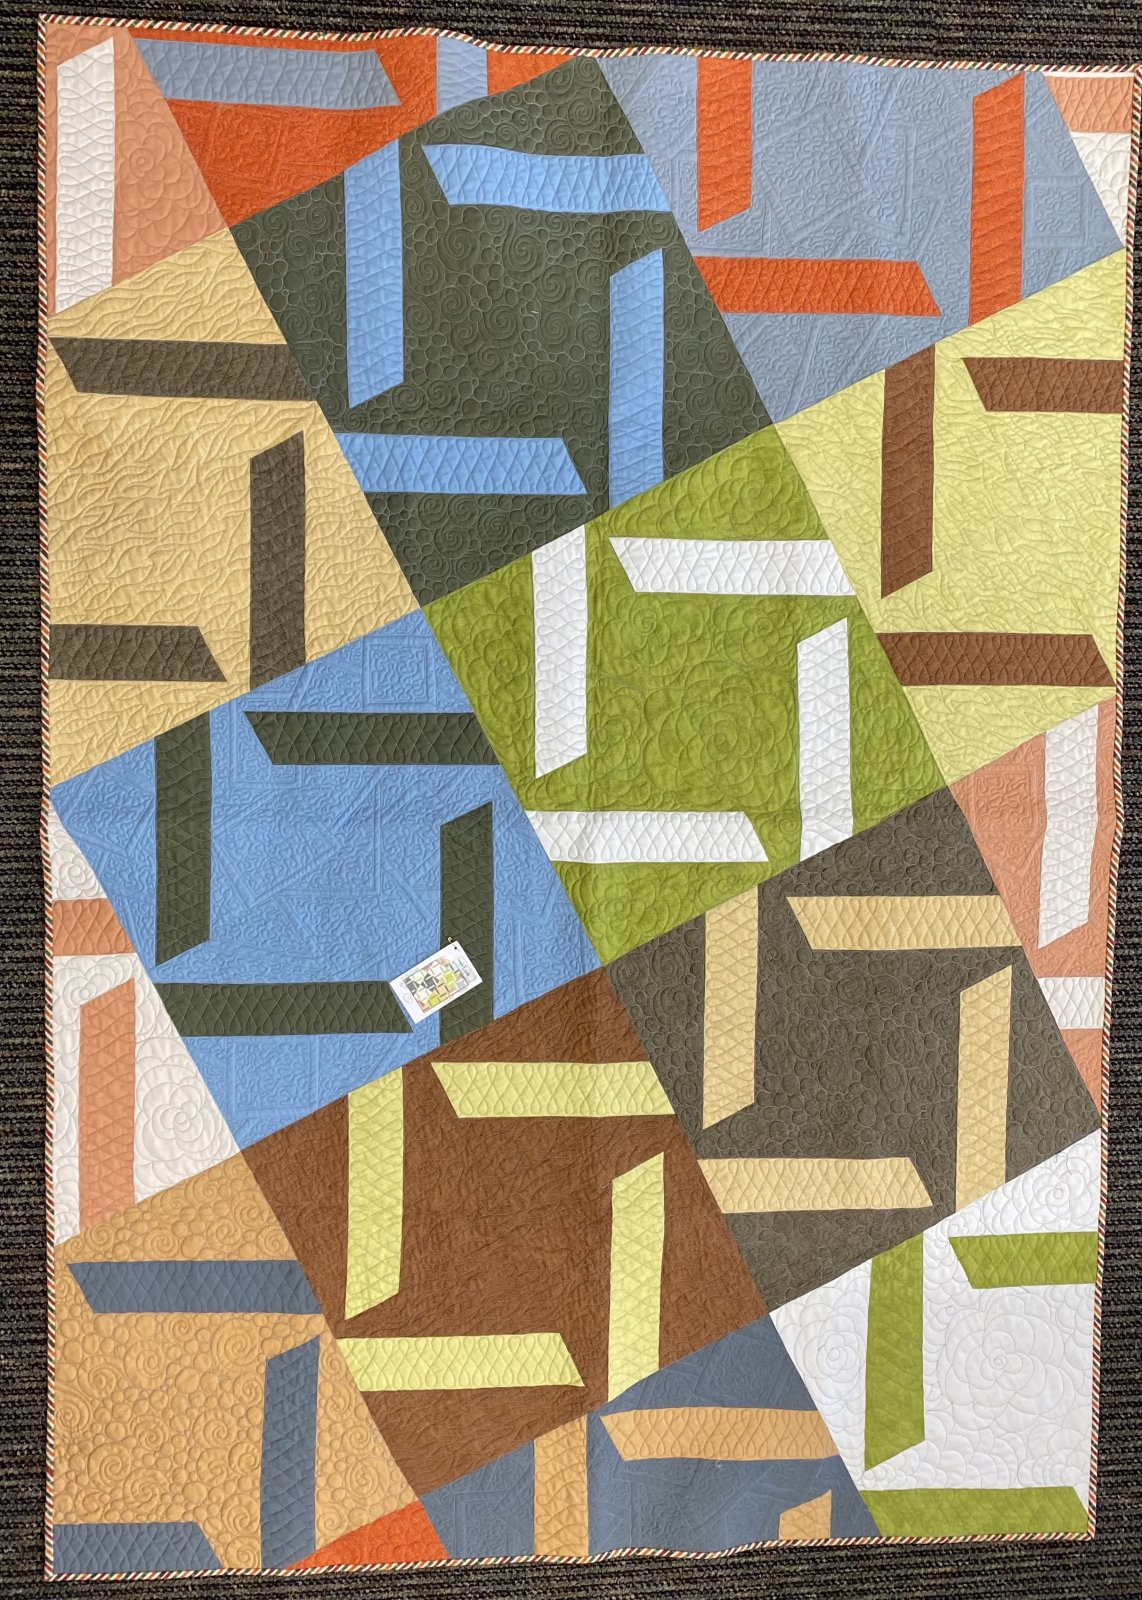 Free-Motion Quilting Angela Walters